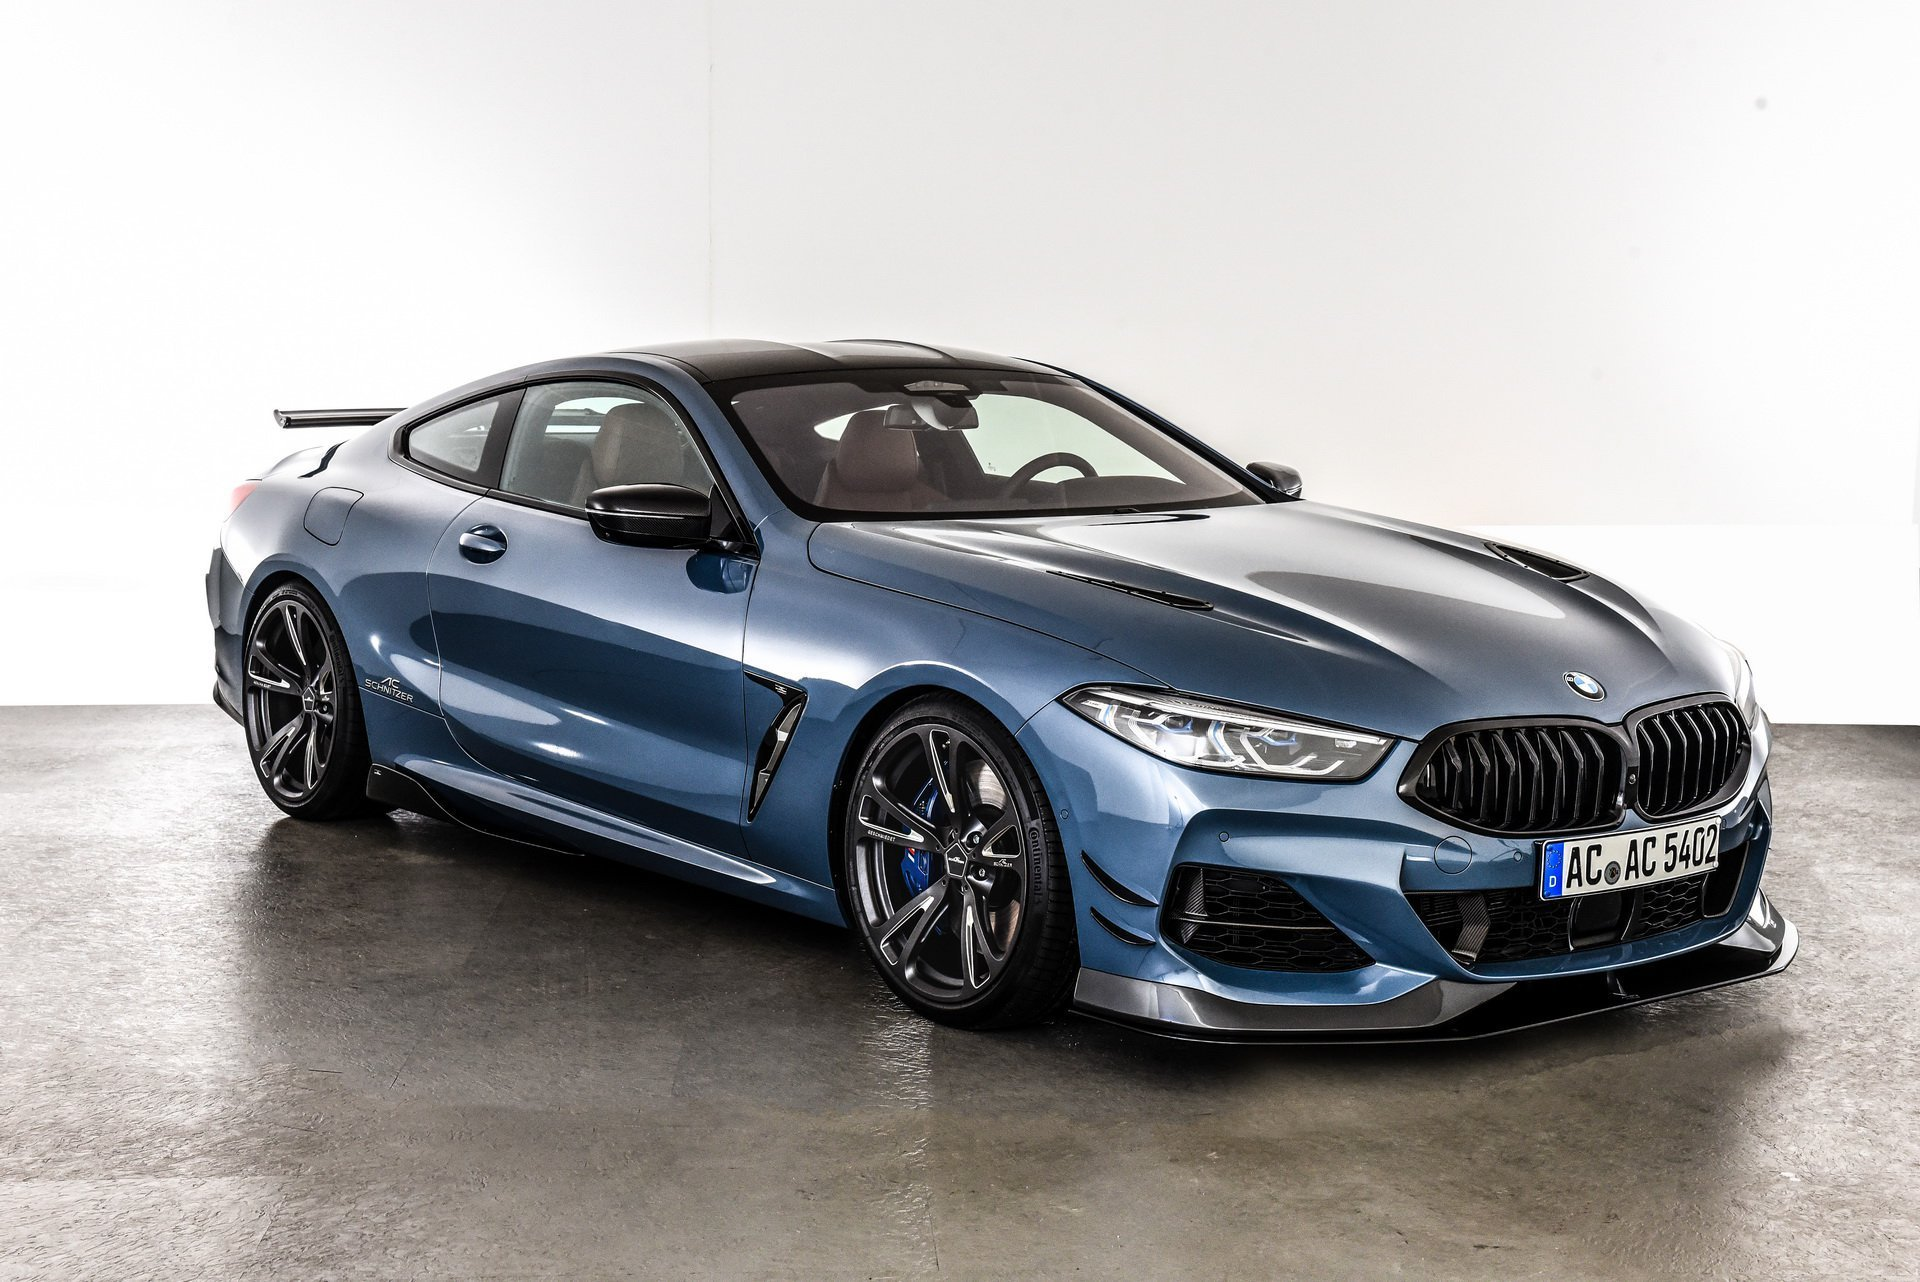 Latest Ac Schnitzer Bmw 8 Series Coupe Looks Furious Free Download